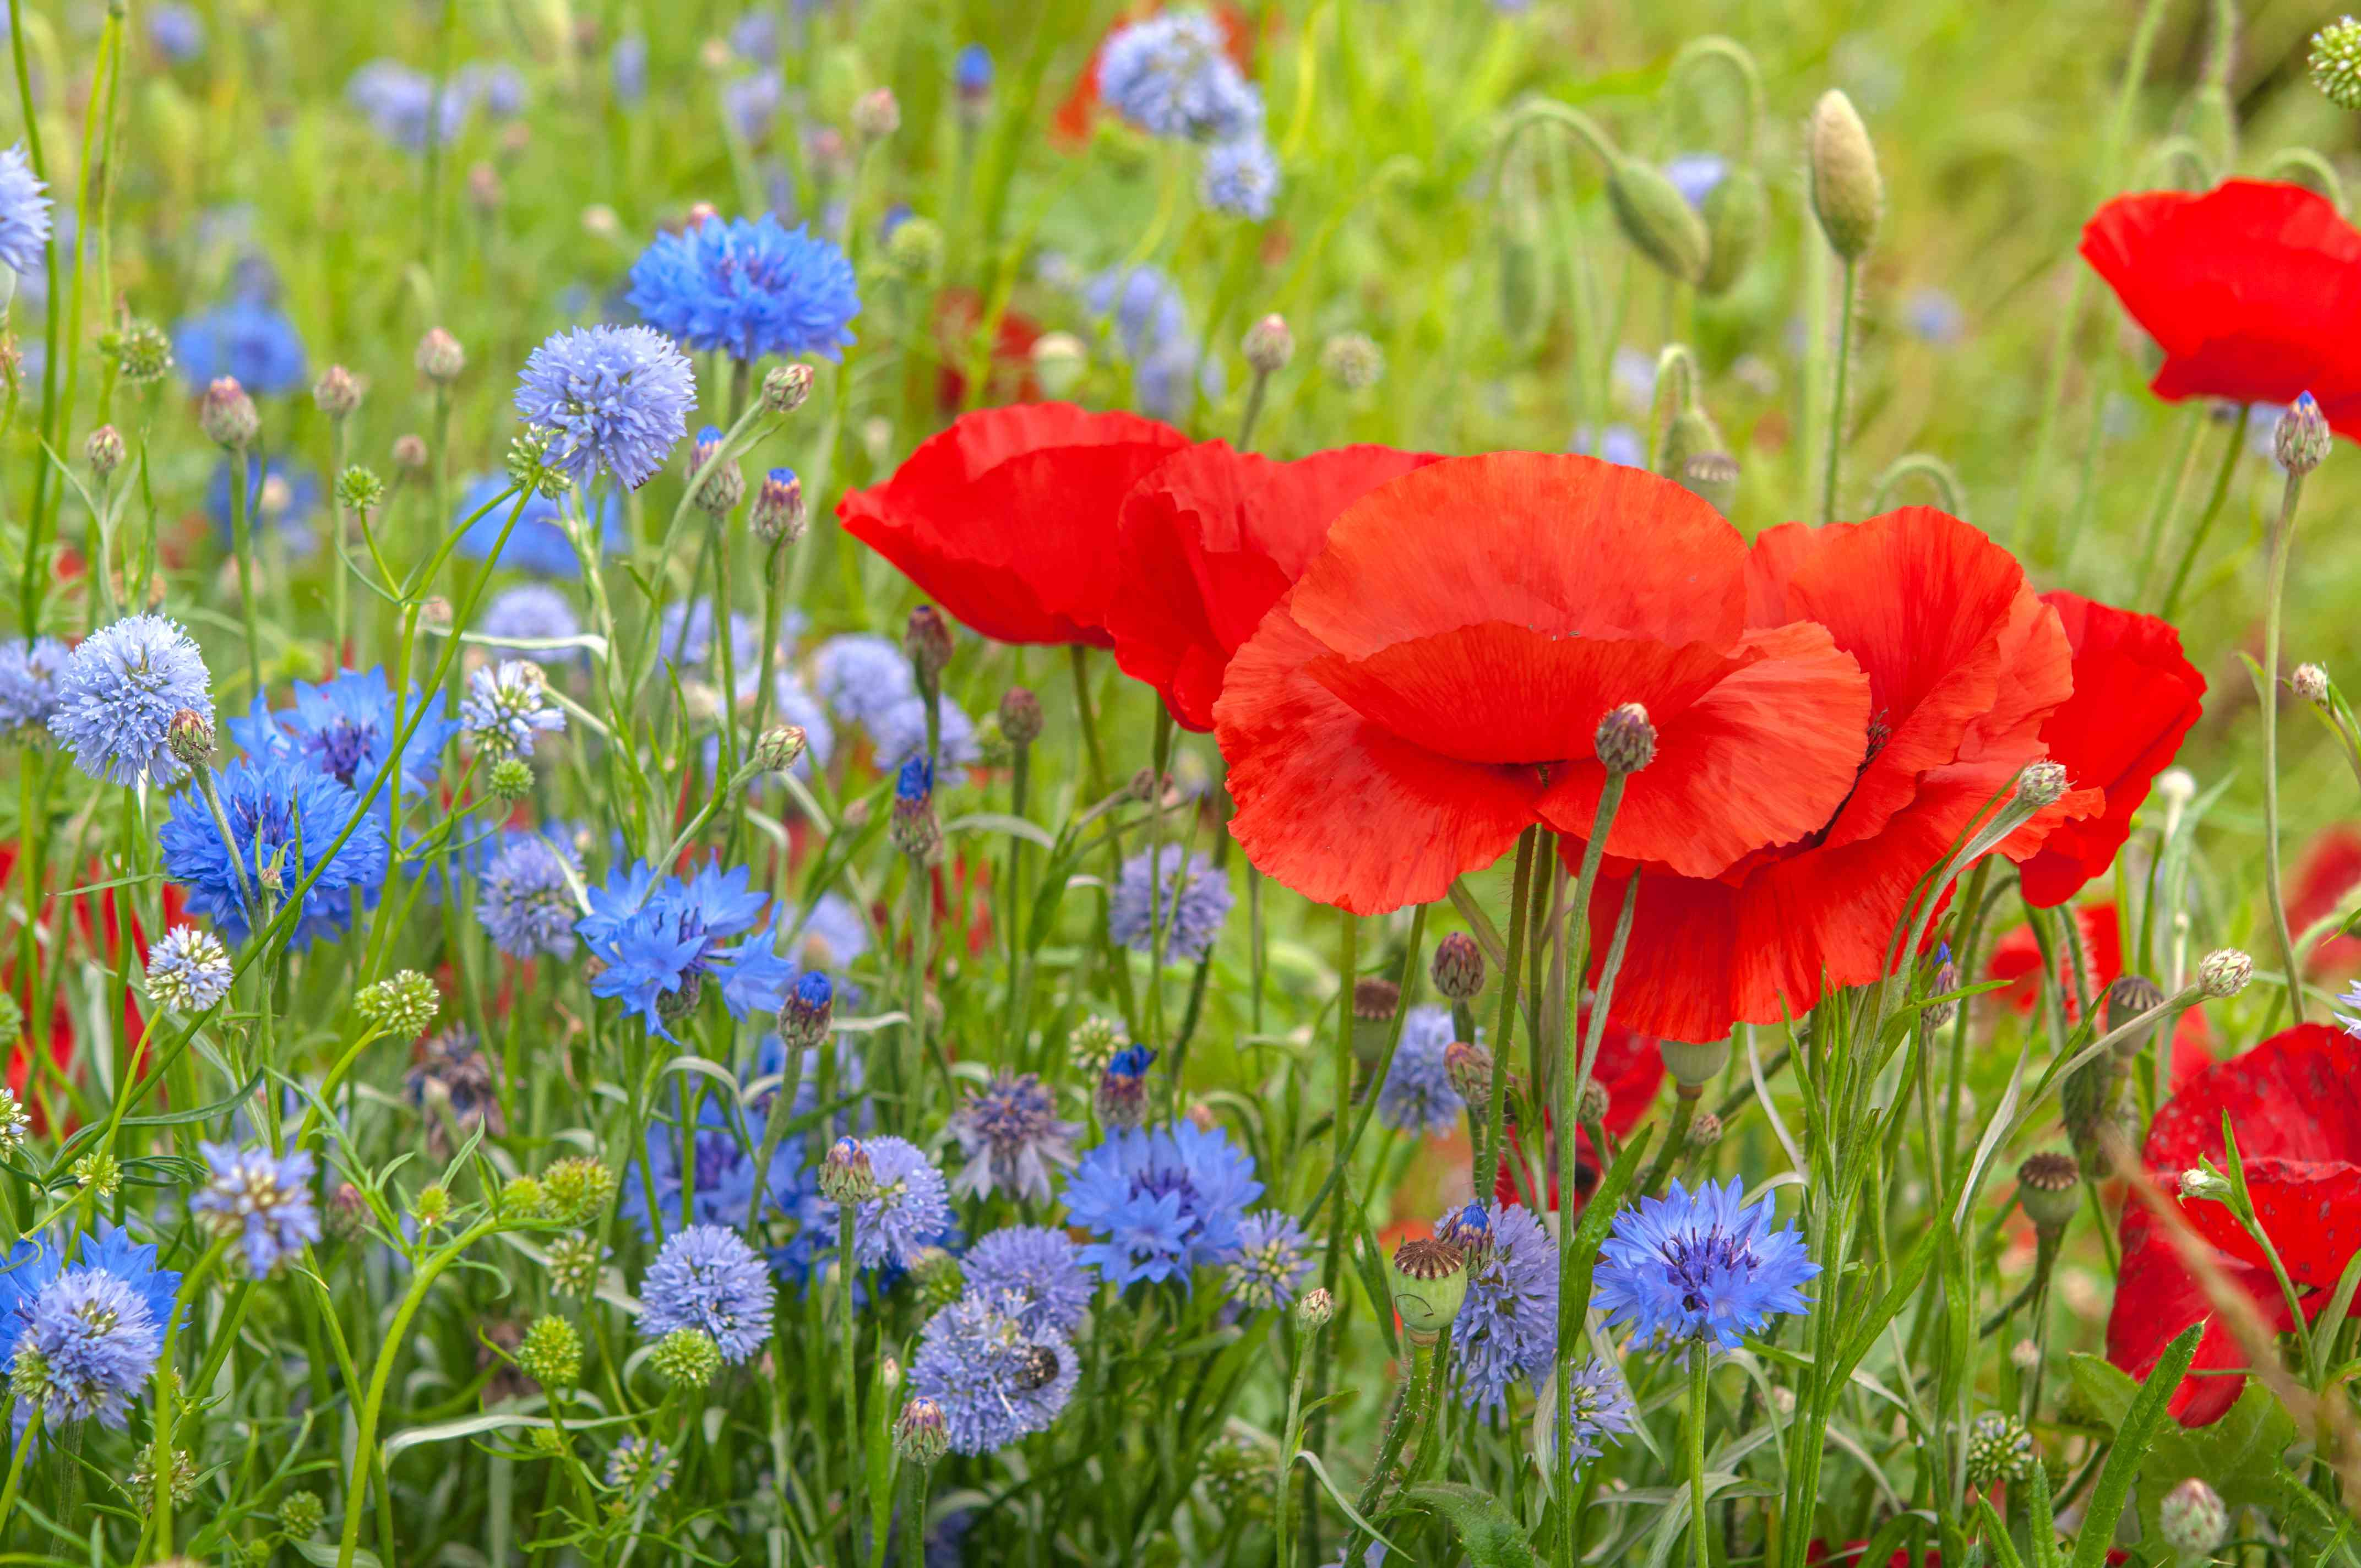 Common poppy with red flowers next to blue and light purple thistle in garden